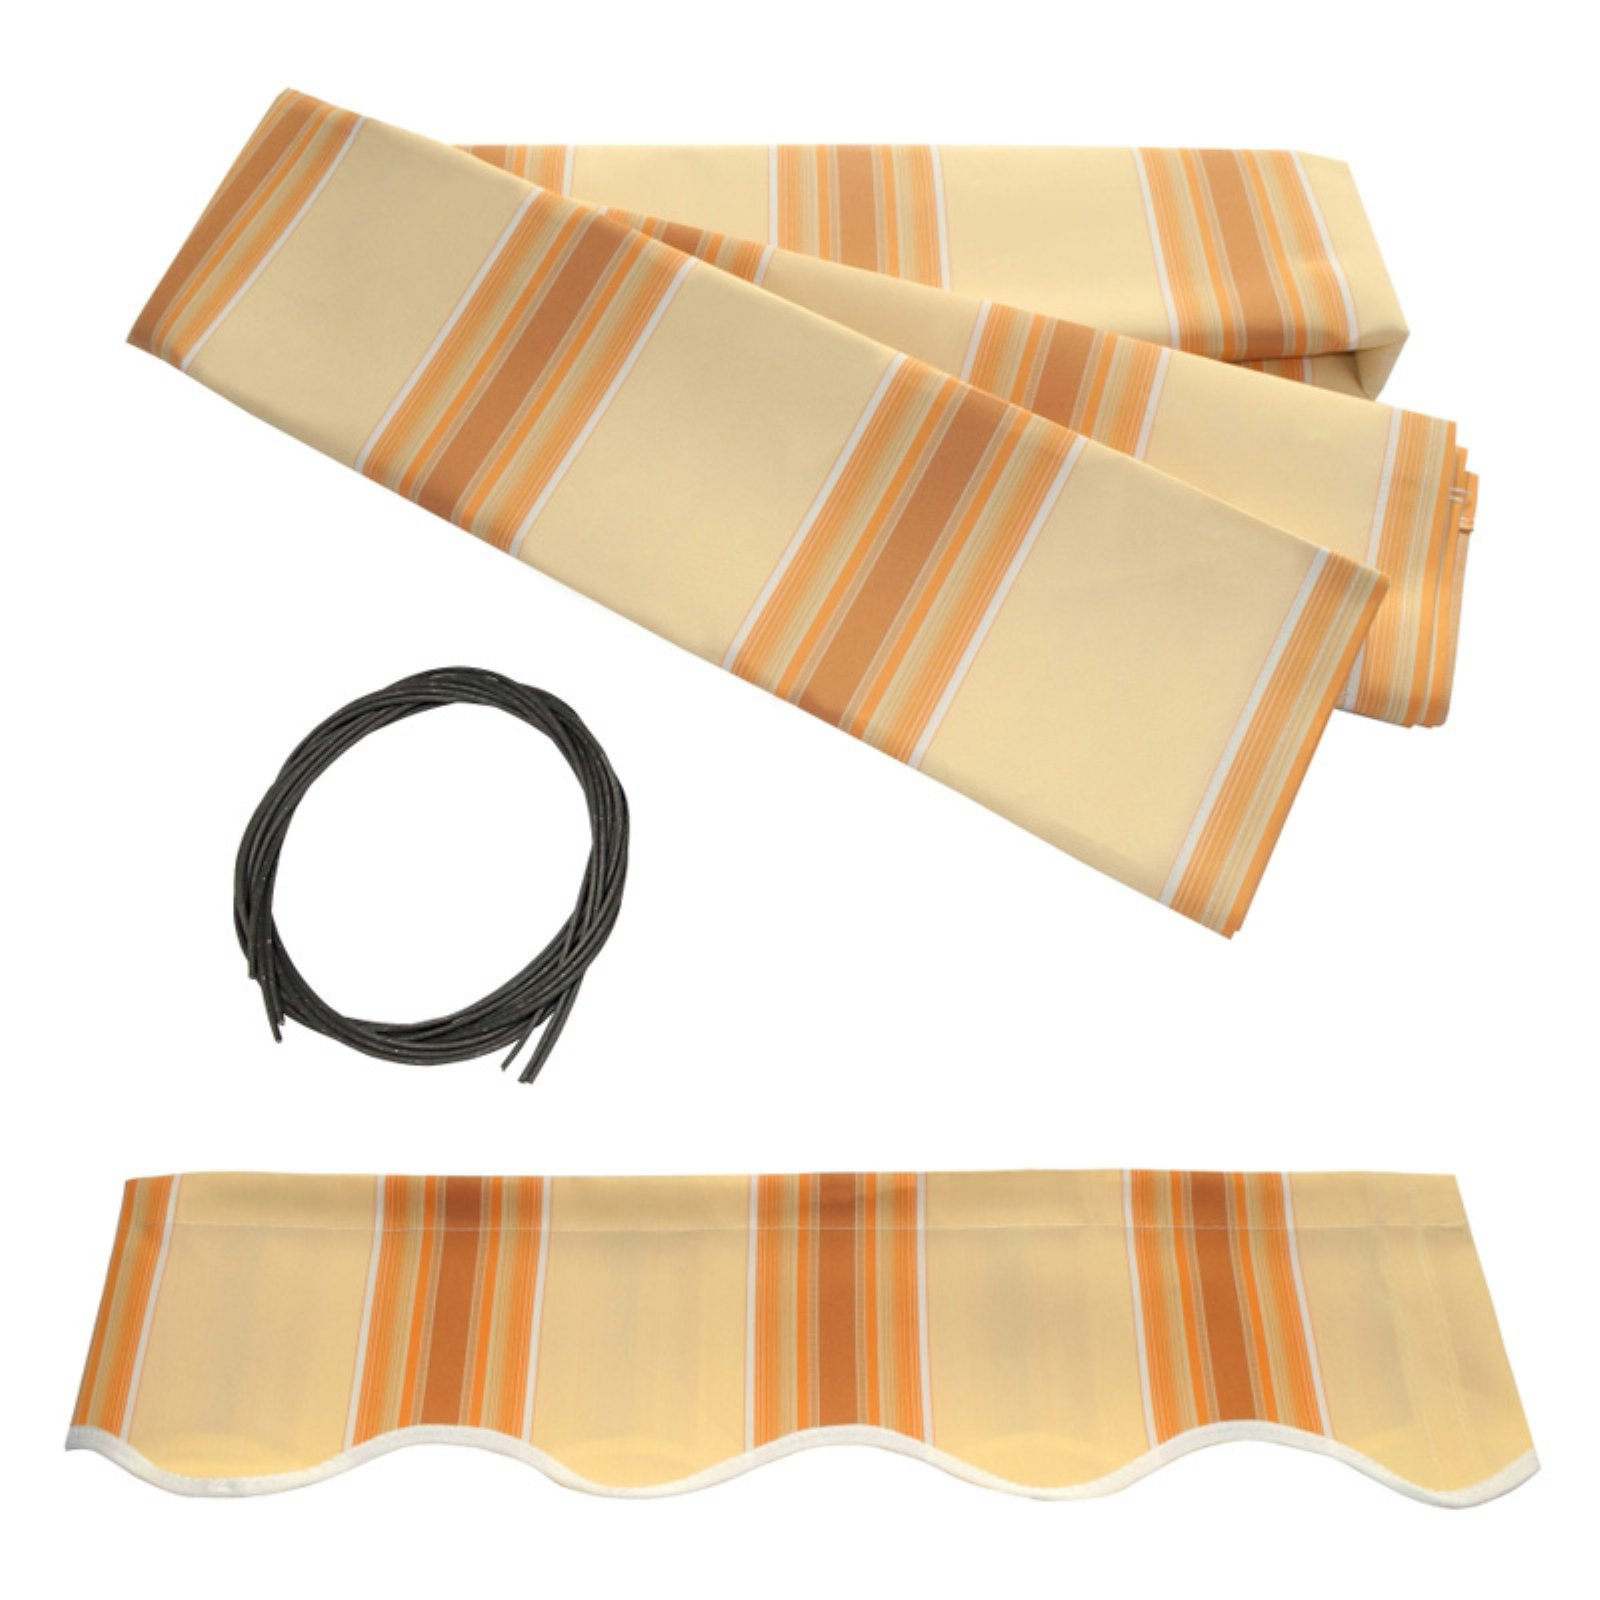 ALEKO 13'x10' Retractable Awning Fabric Replacement, Multi ...